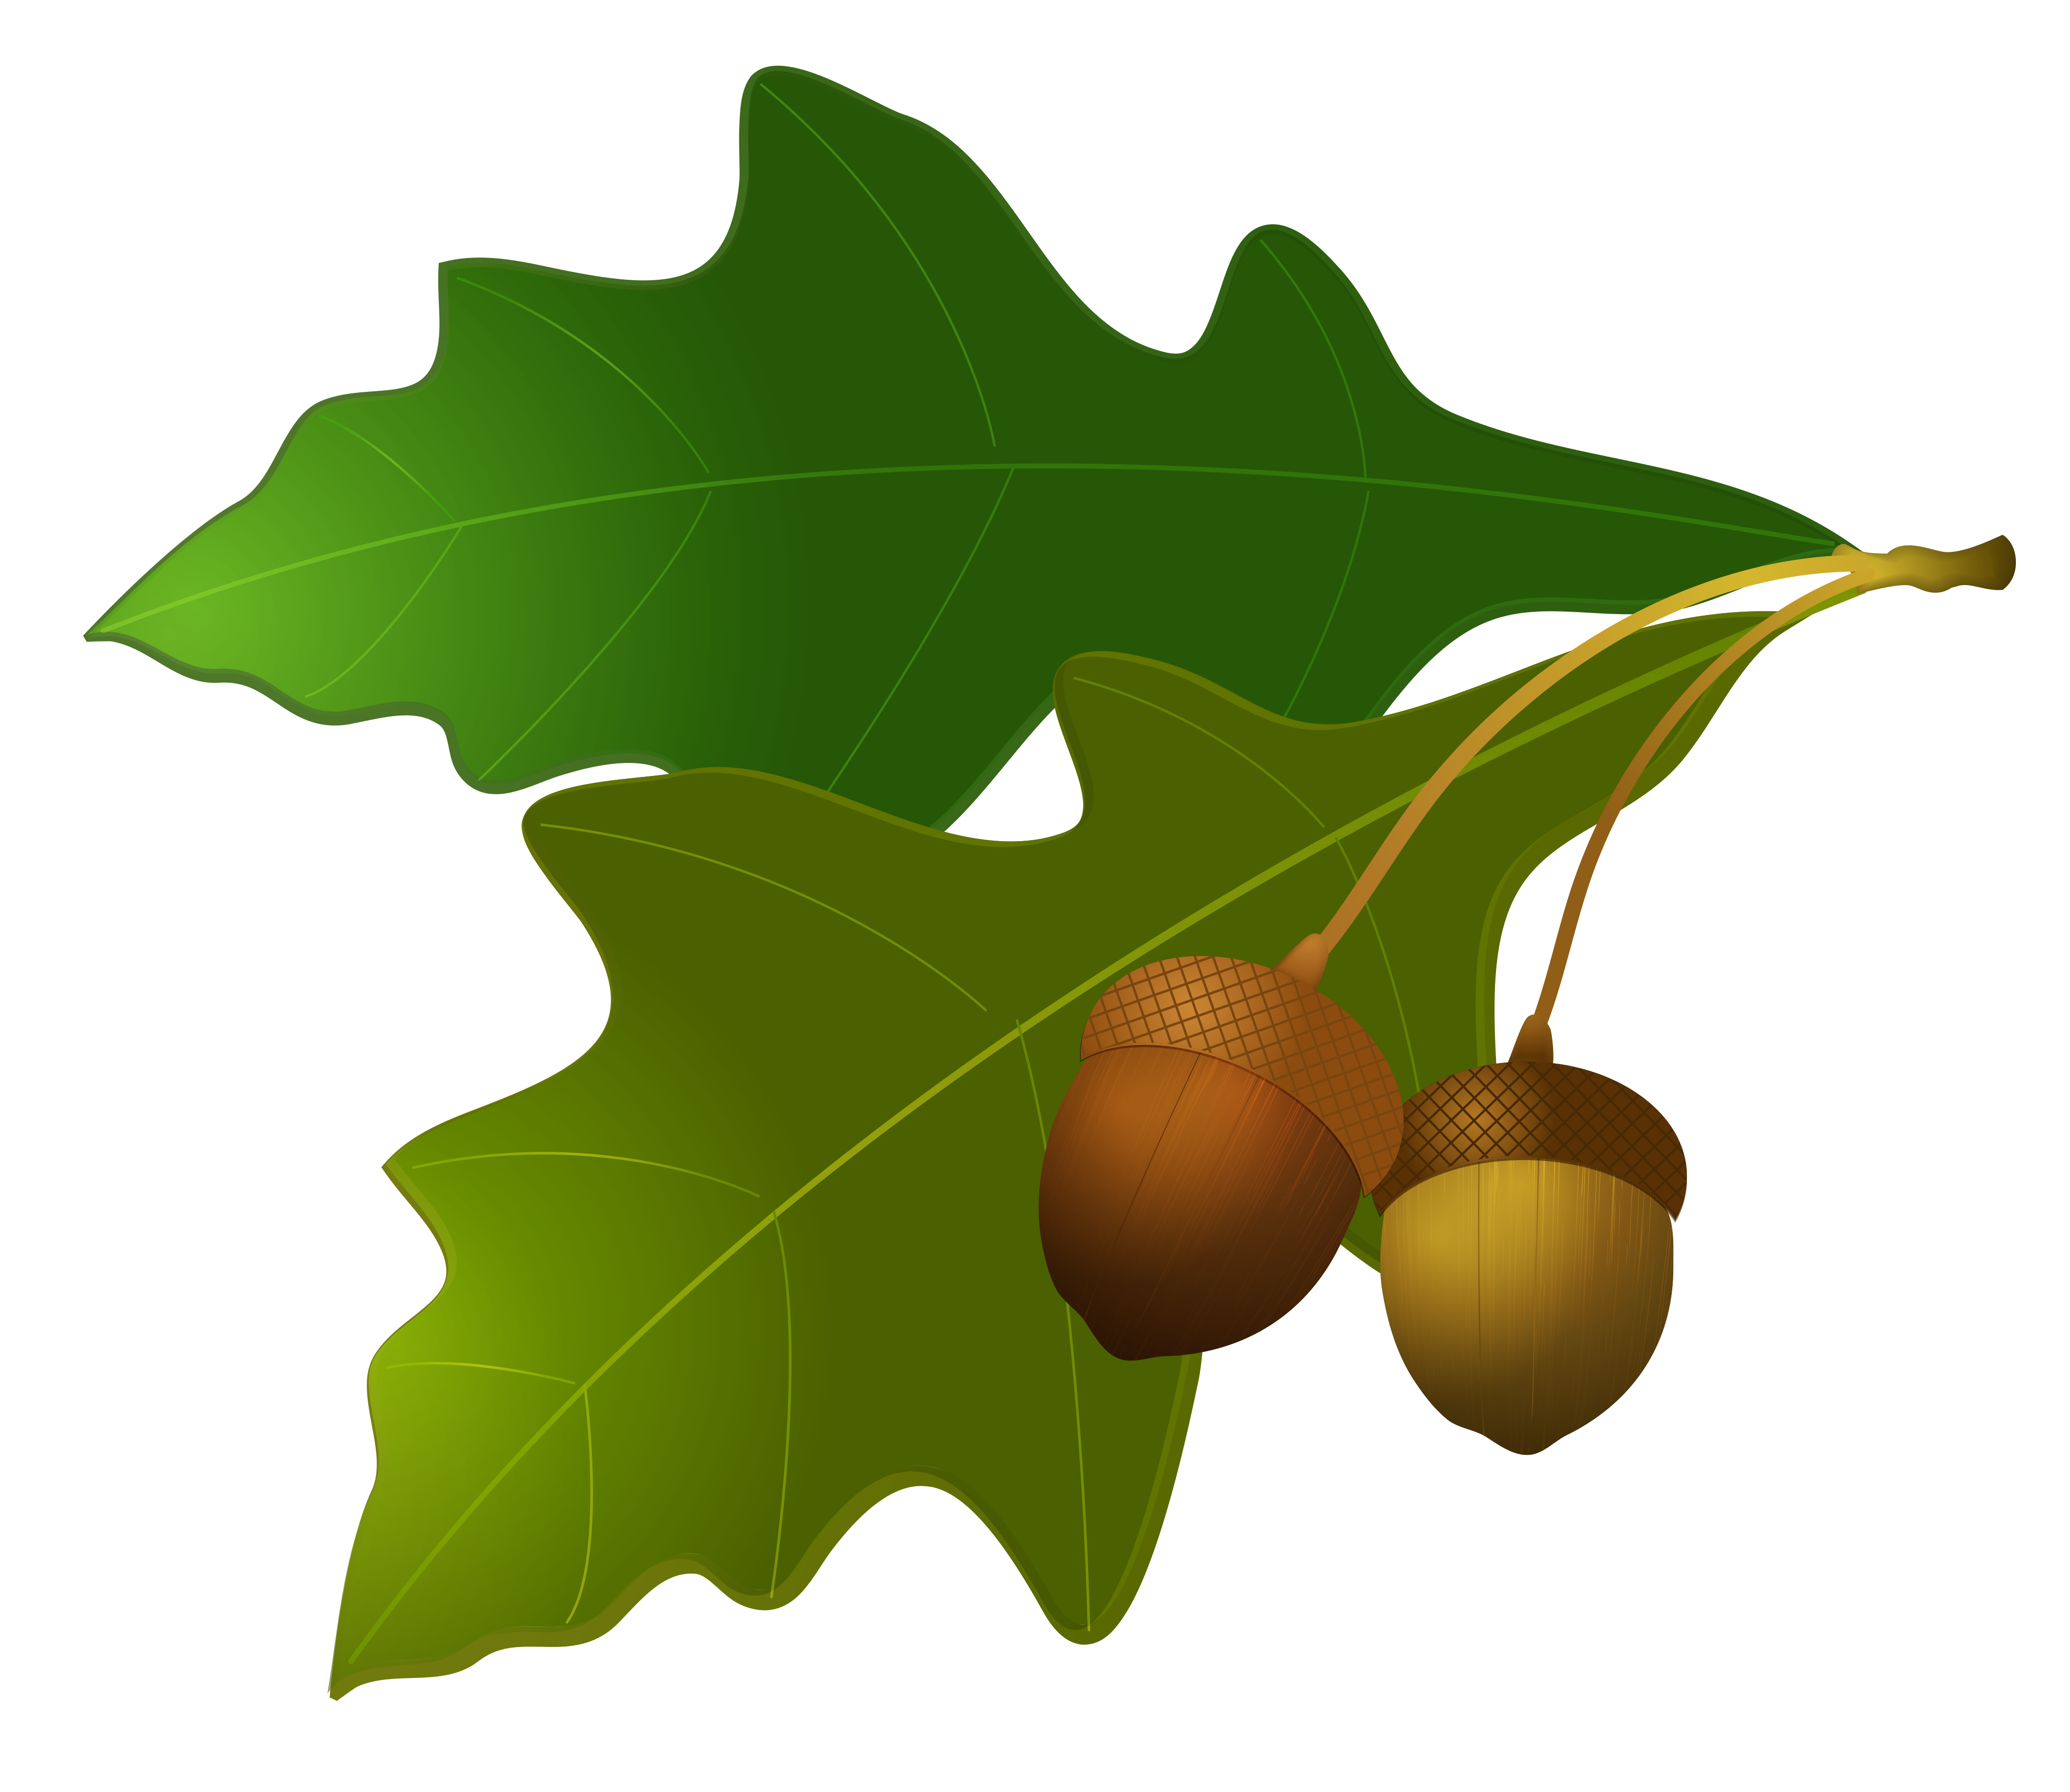 banner freeuse download Acorn clipart leaf. Leaves with acorns gallery